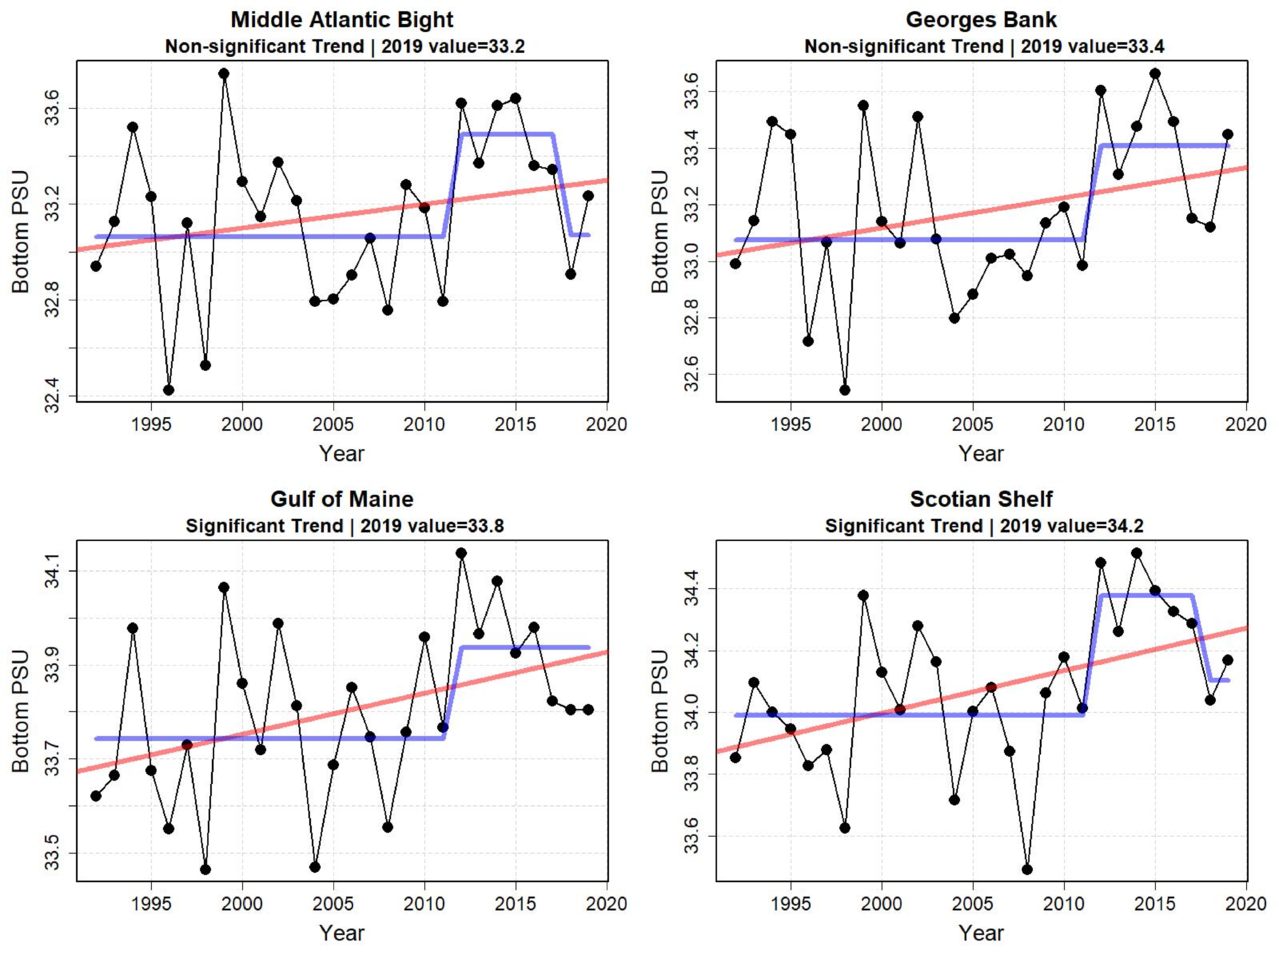 Graphs showing bottom water salinity for the last six months of the year from 1998 to 2019. Bottom salinity increased in all ecoregions in the second half of 2019, but more dramatically in the Gulf of Maine and Scotian Shelf areas. There is an increase in salinity around 2012. In recent years, salinity has tended to moderate to levels around mean level.